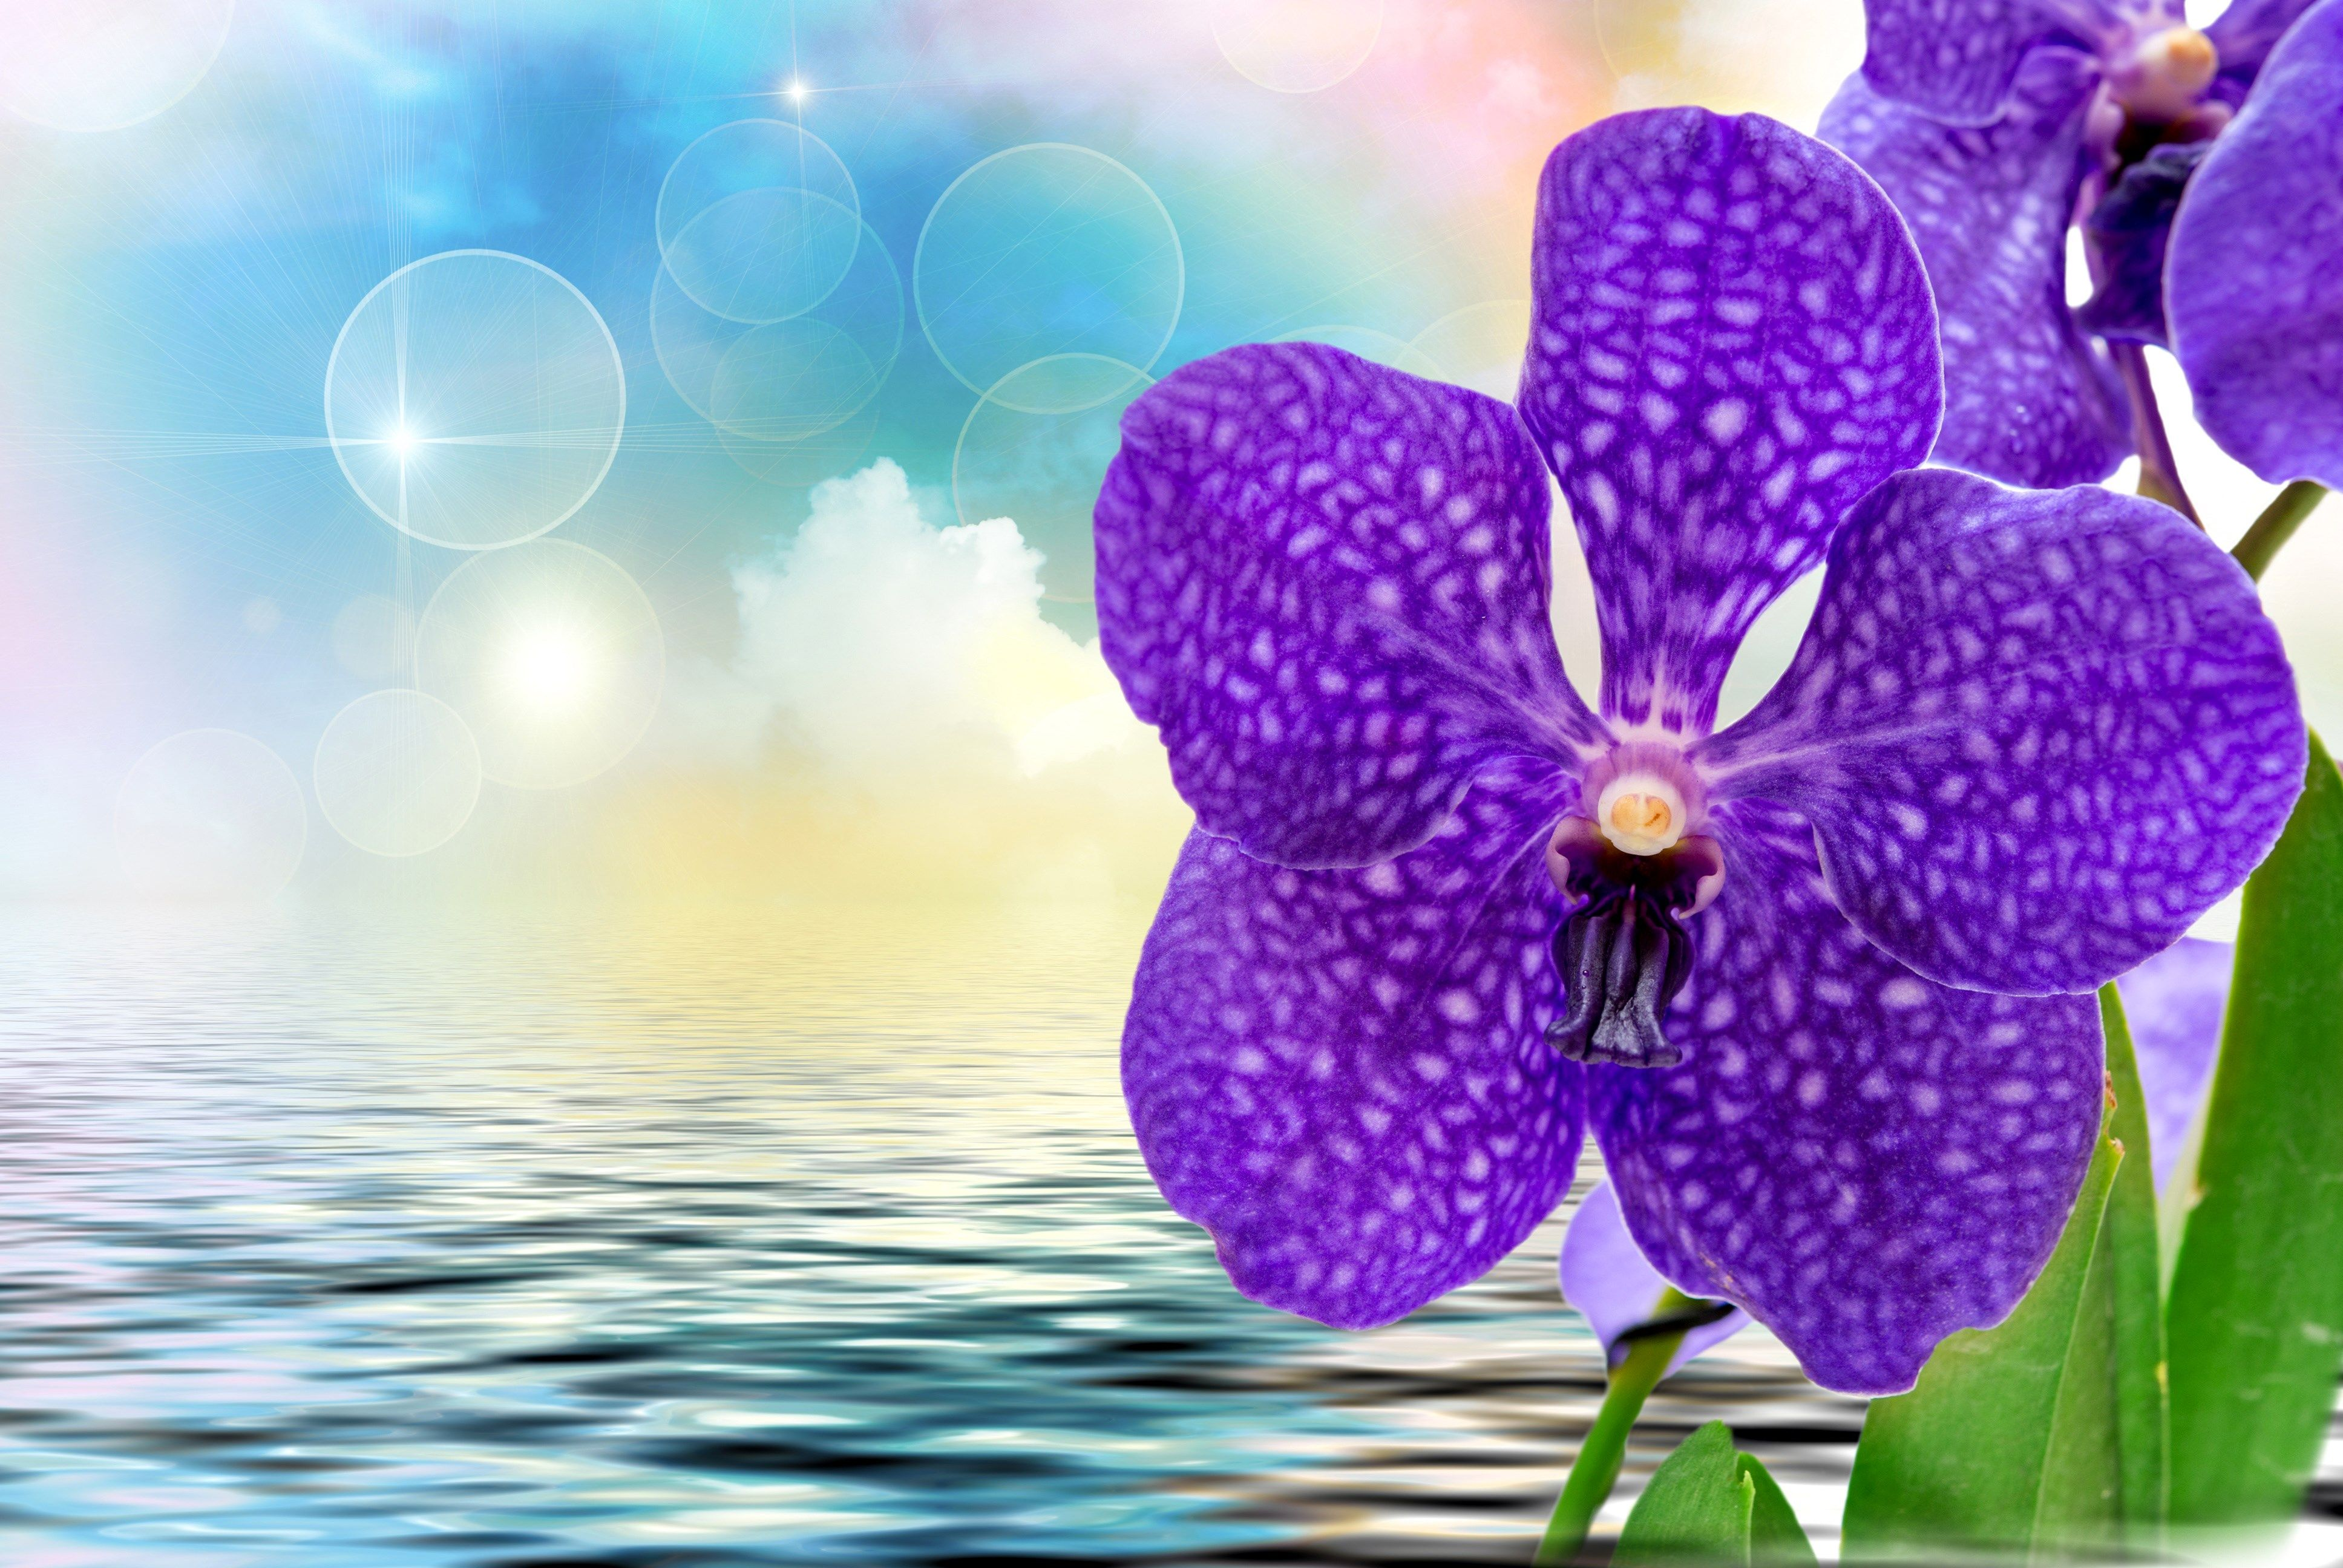 3872x2592 Px Beautiful Orchid Image By Trent Chester For Pocketfullofgrace